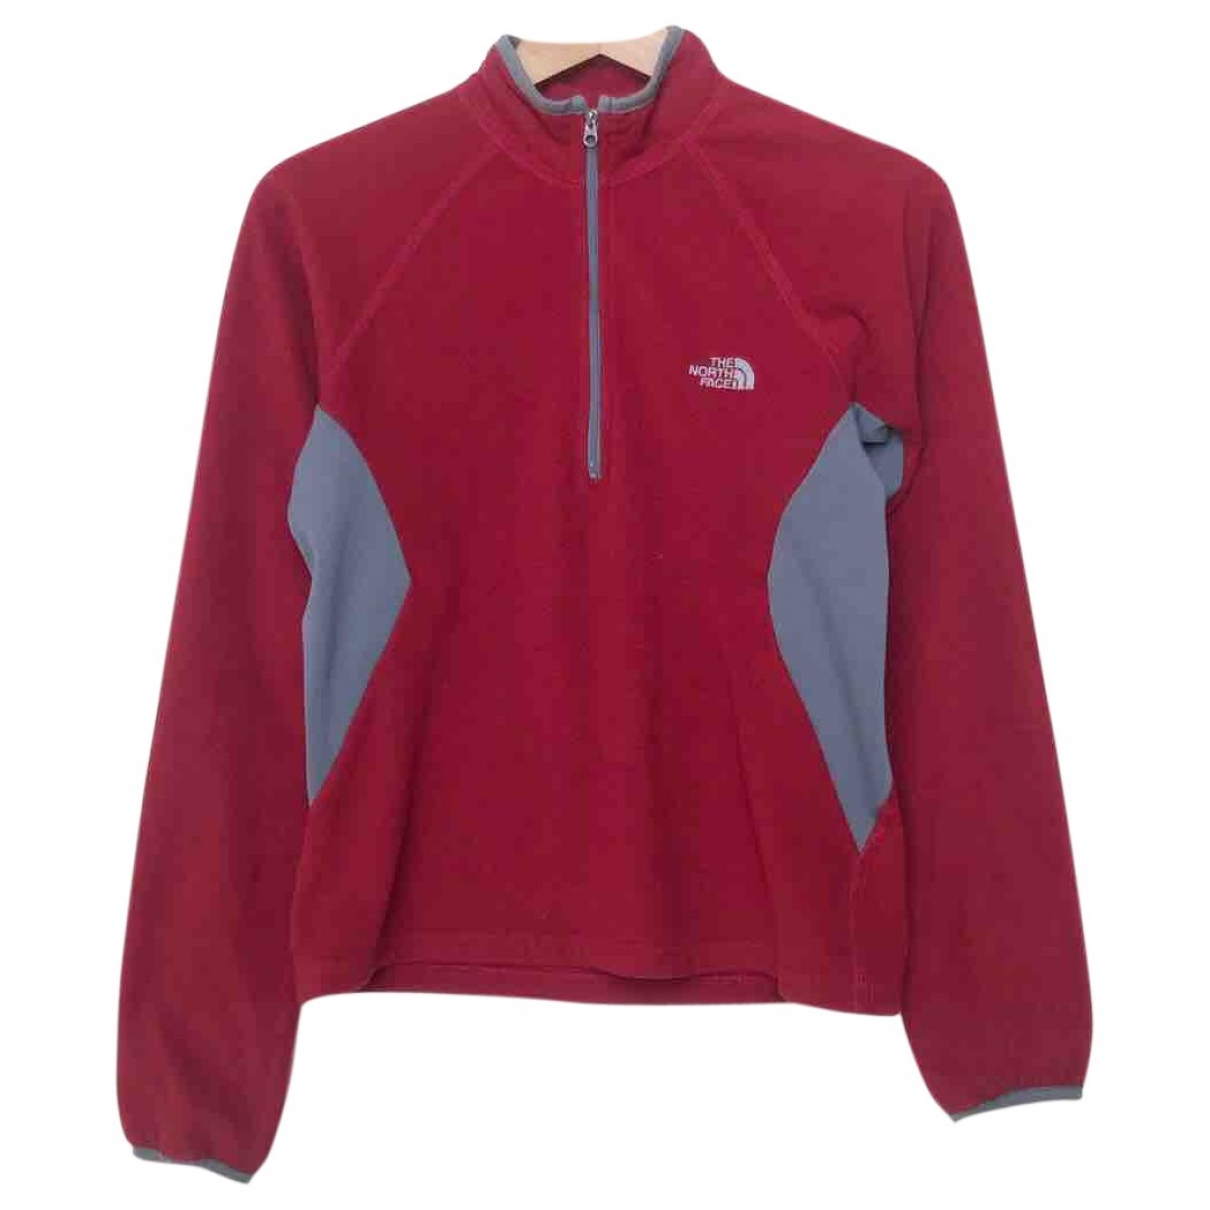 The North Face \N Burgundy jacket for Women S International